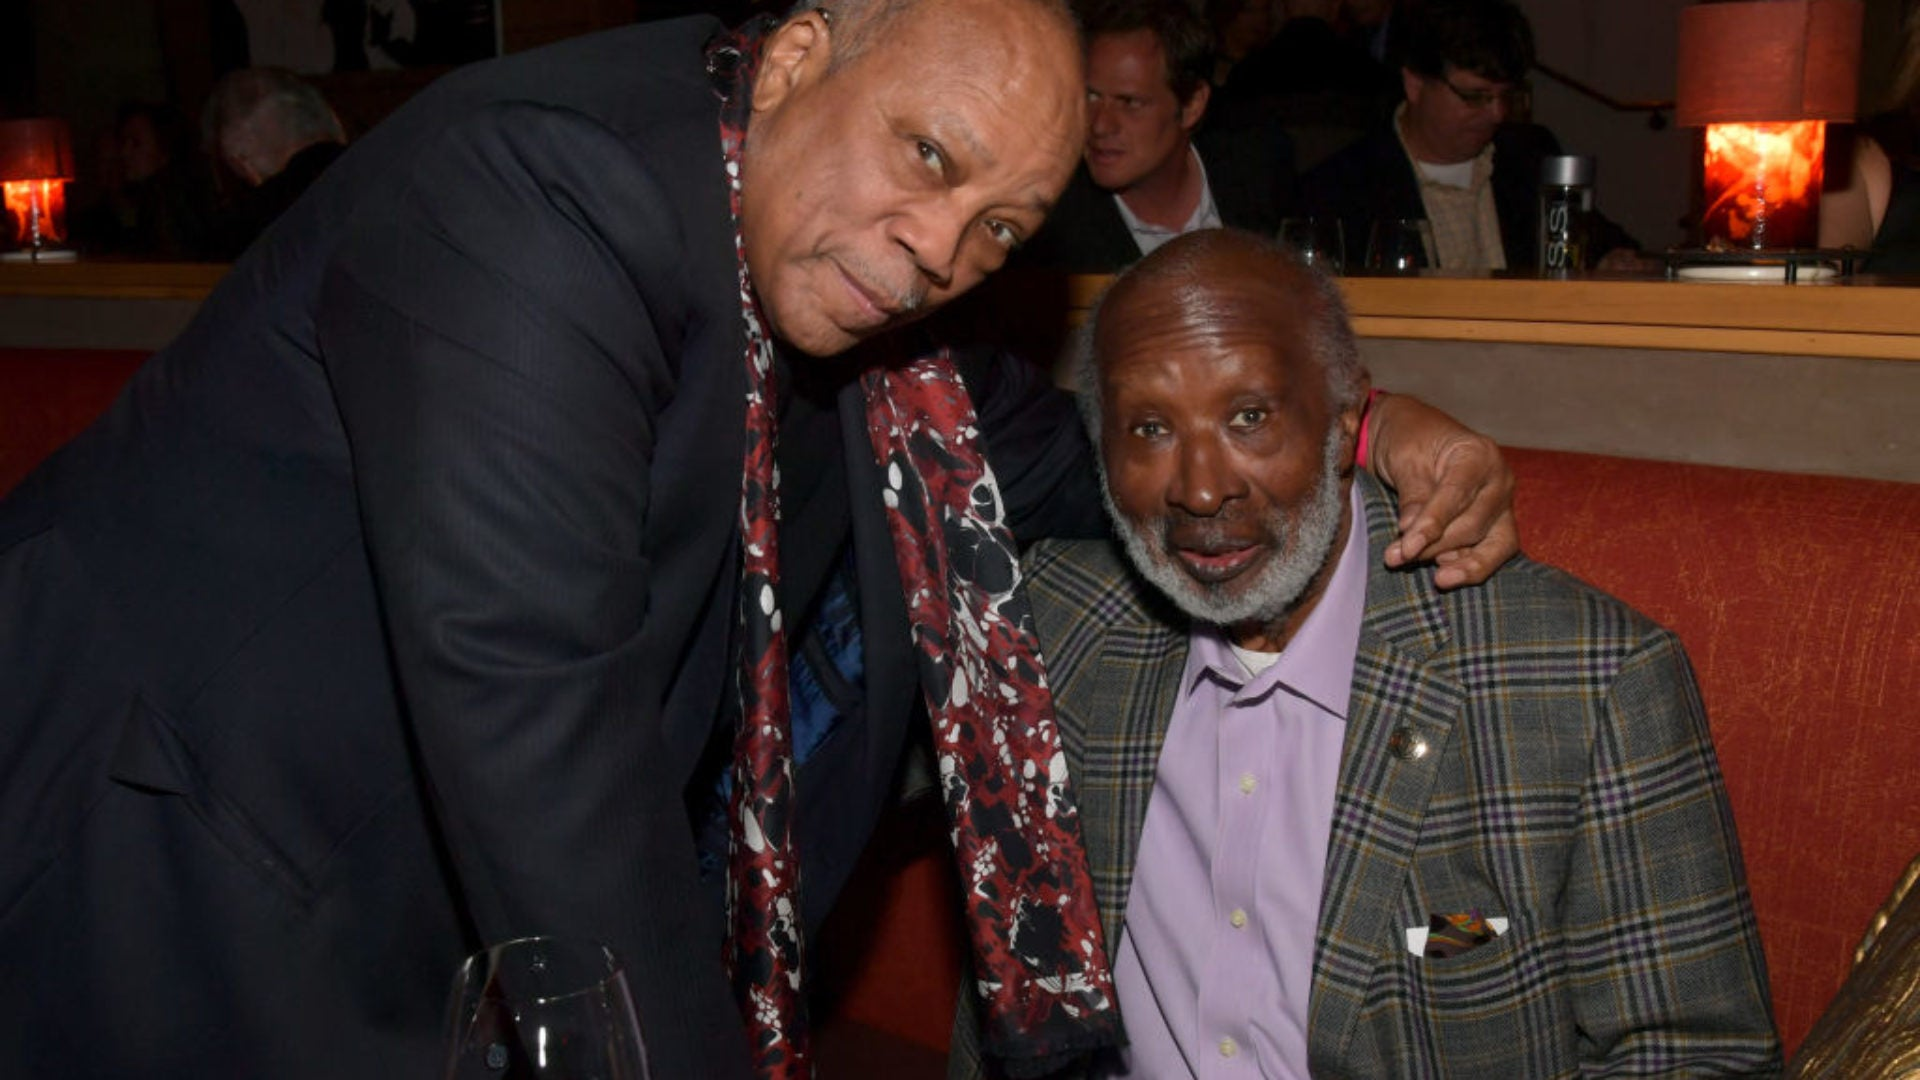 'Godfather Of Black Music' Clarence Avant To Be Honored At Clive Davis' Grammy Party